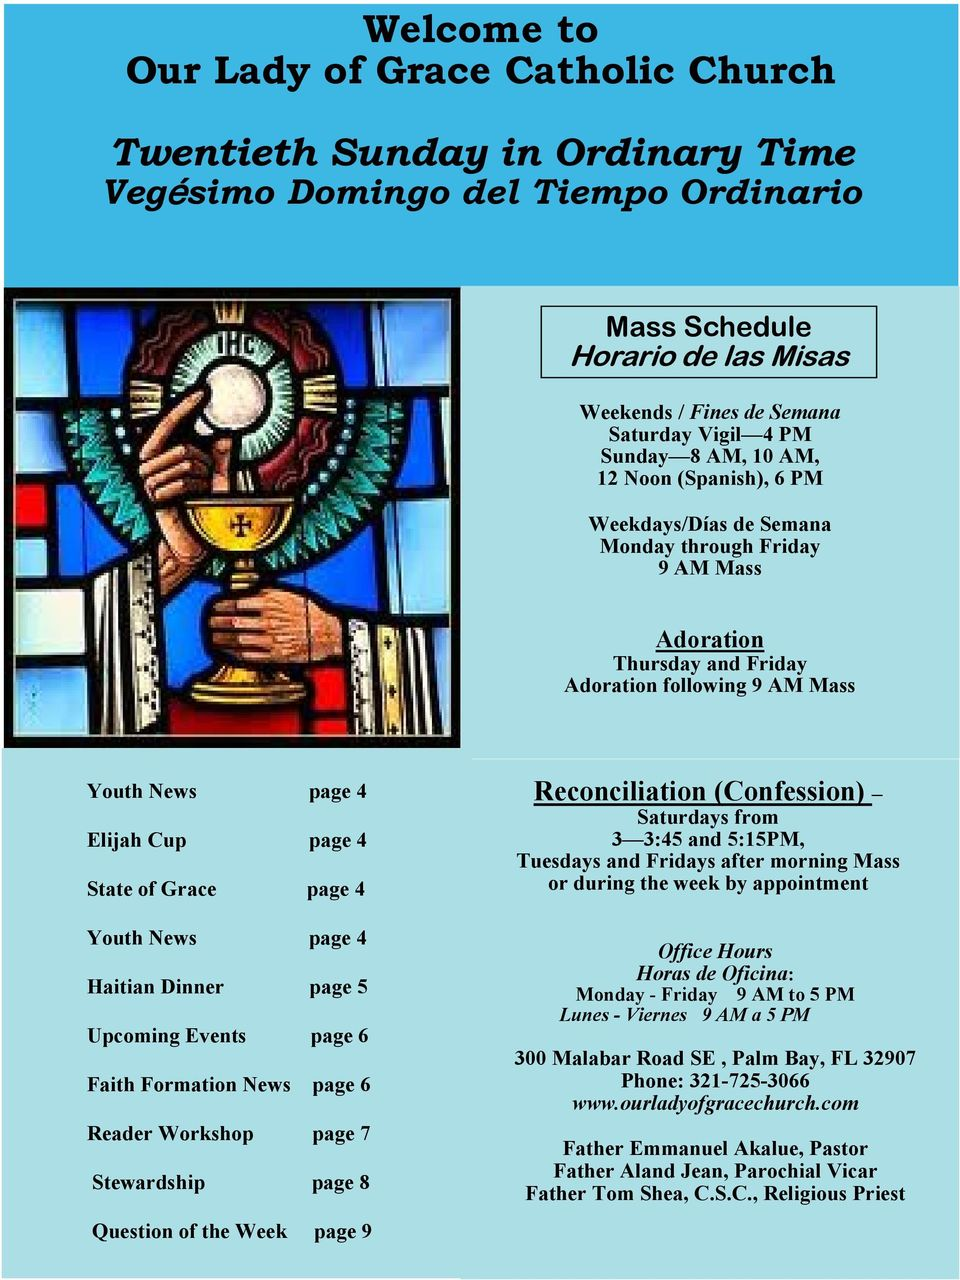 State of Grace page 4 Youth News page 4 Haitian Dinner page 5 Upcoming Events page 6 Faith Formation News page 6 Reader Workshop page 7 Stewardship page 8 Question of the Week page 9 Reconciliation